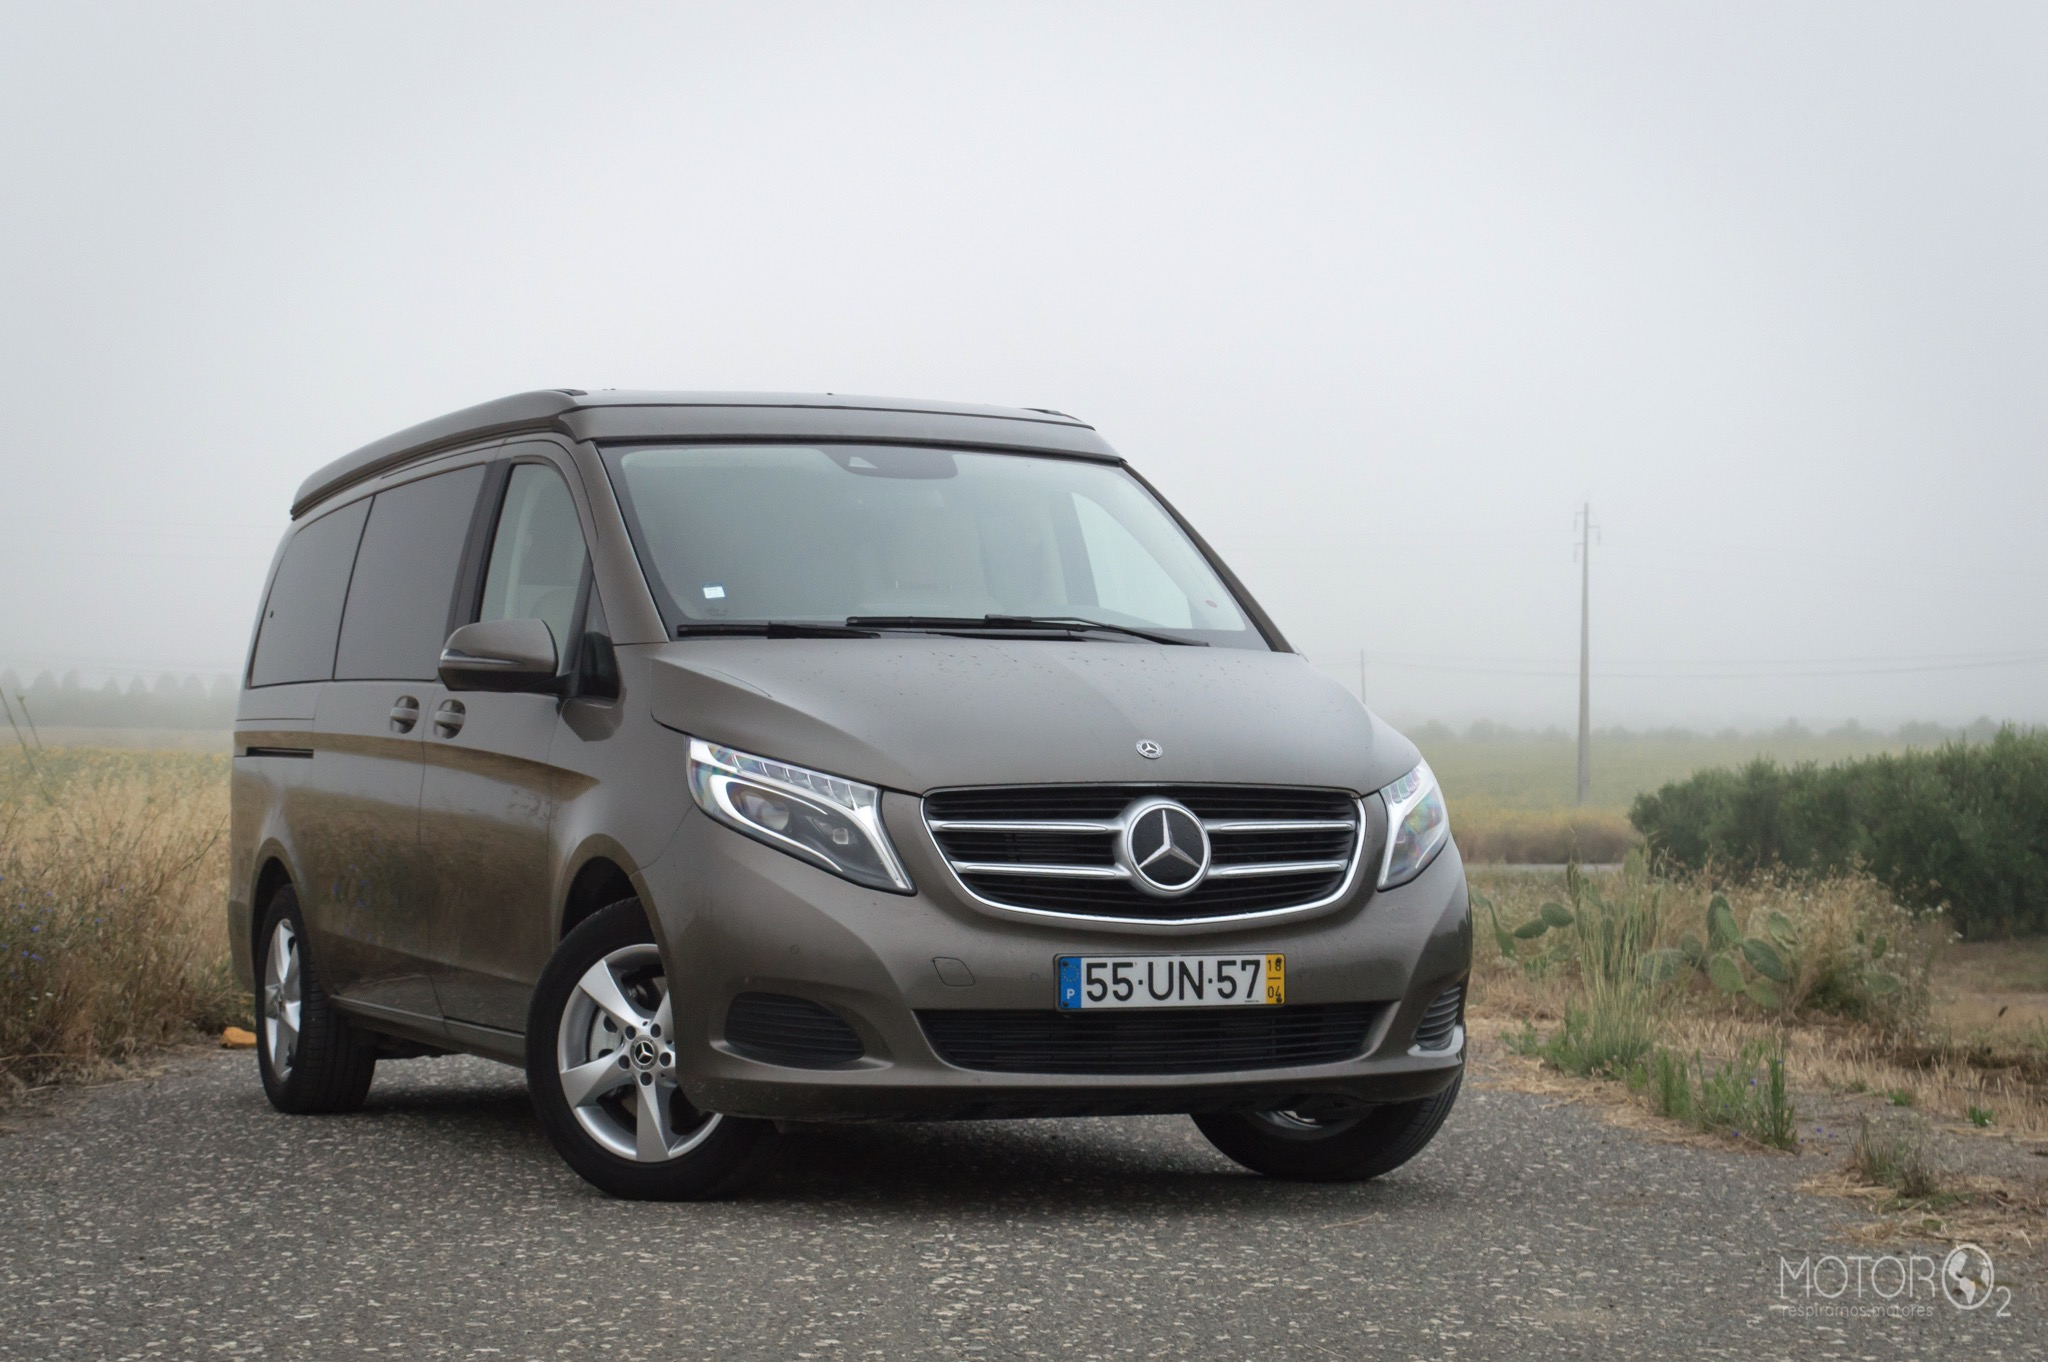 Mercedes-Benz V250d 'Marco Polo'